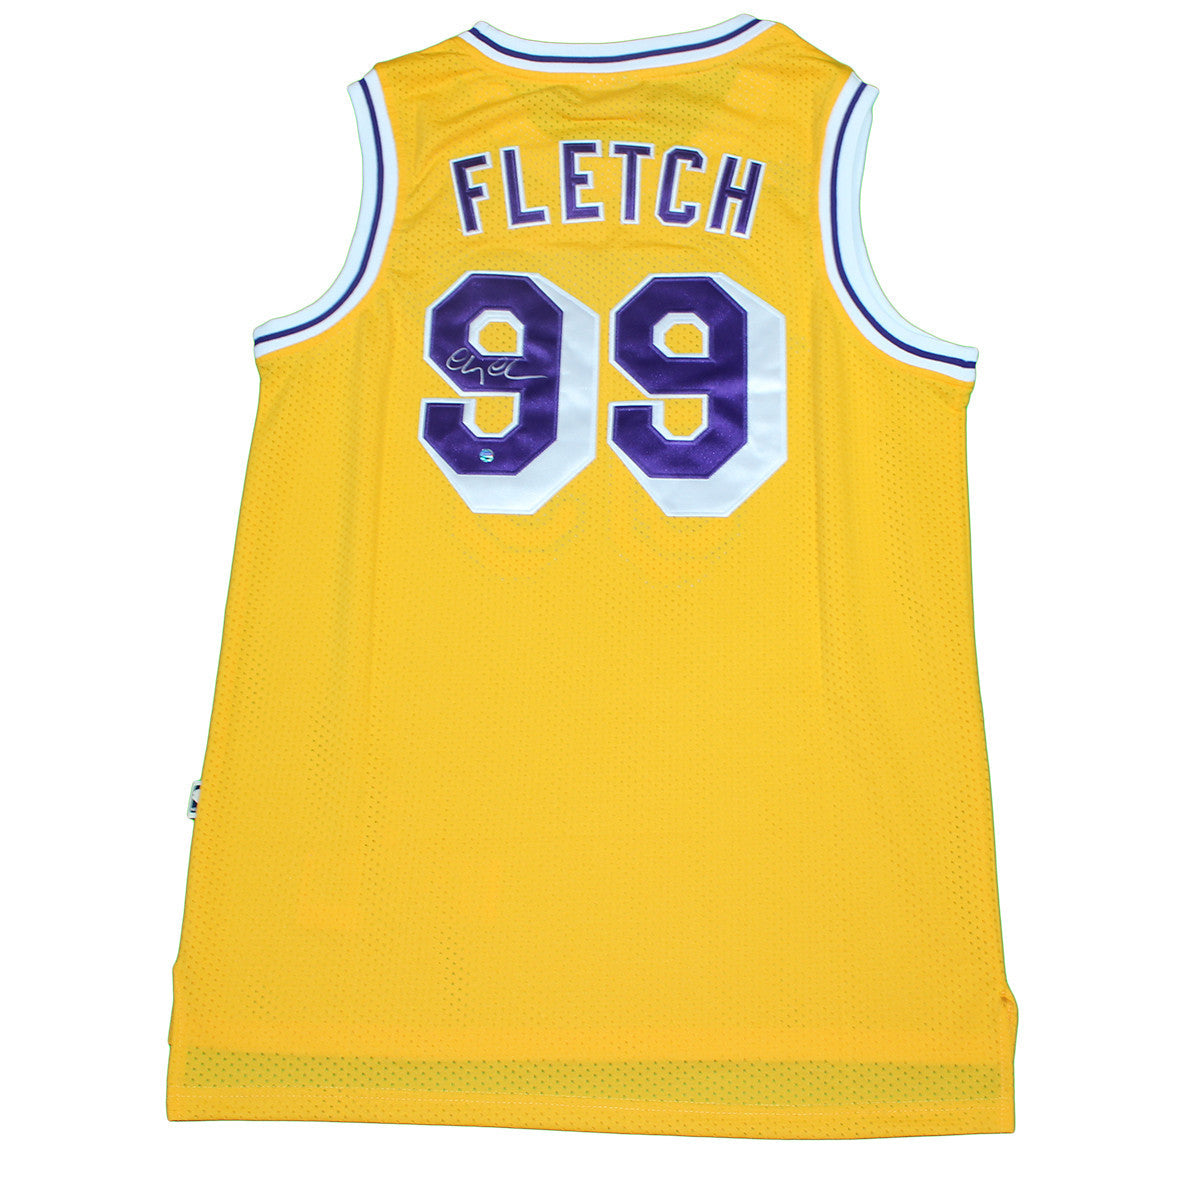 8c1435b744b5 Chevy Chase Signed Fletch Los Angeles Lakers Jersey ...